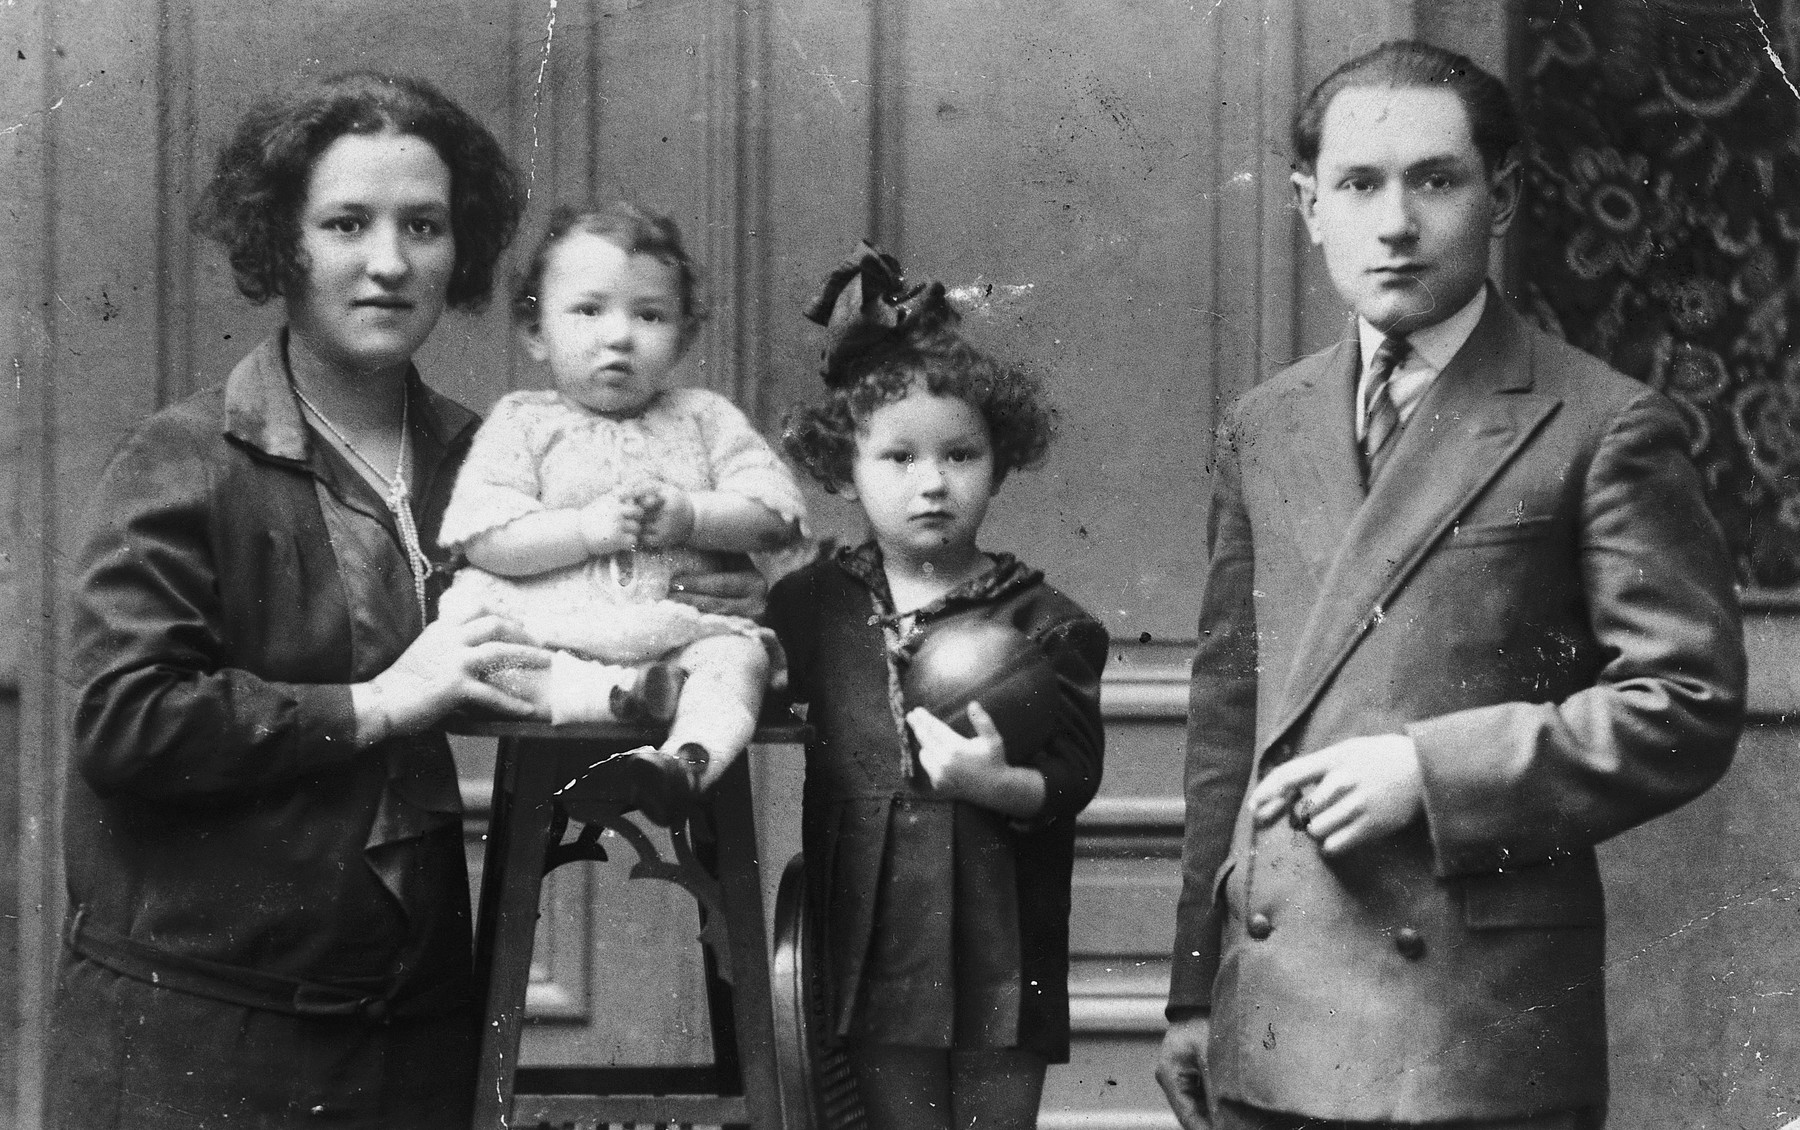 Prewar portrait of a Belgian Jewish family.  From left to right are Chaja Perla, Catharina, Tauba and Israel Mayer Frydland.  Israel Mayer and the two girls perished in the Holocaust.